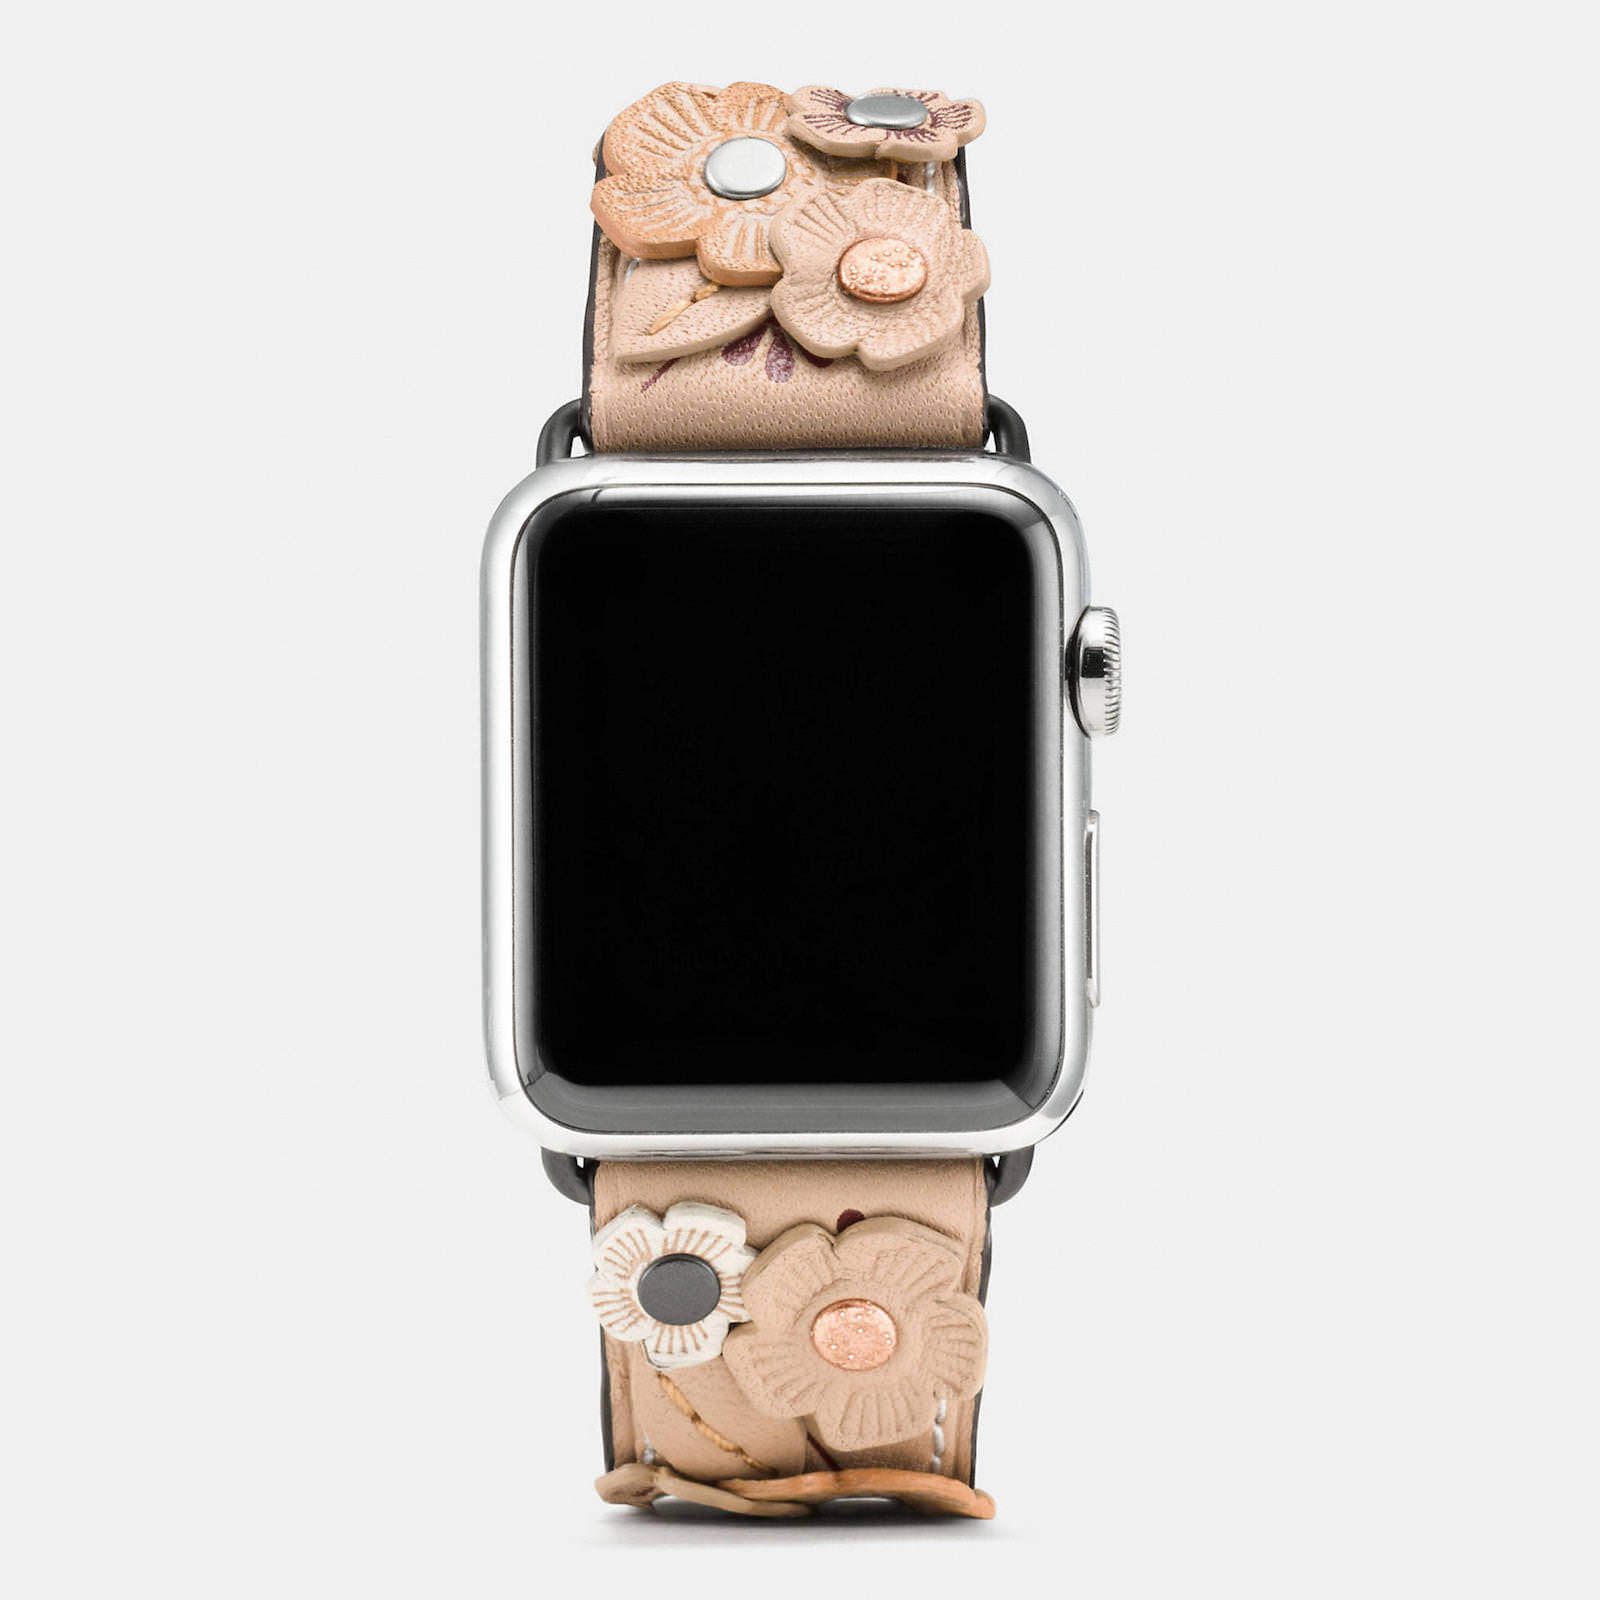 Apple-Watch-Coach-Band-Autumn-Season-10.jpeg